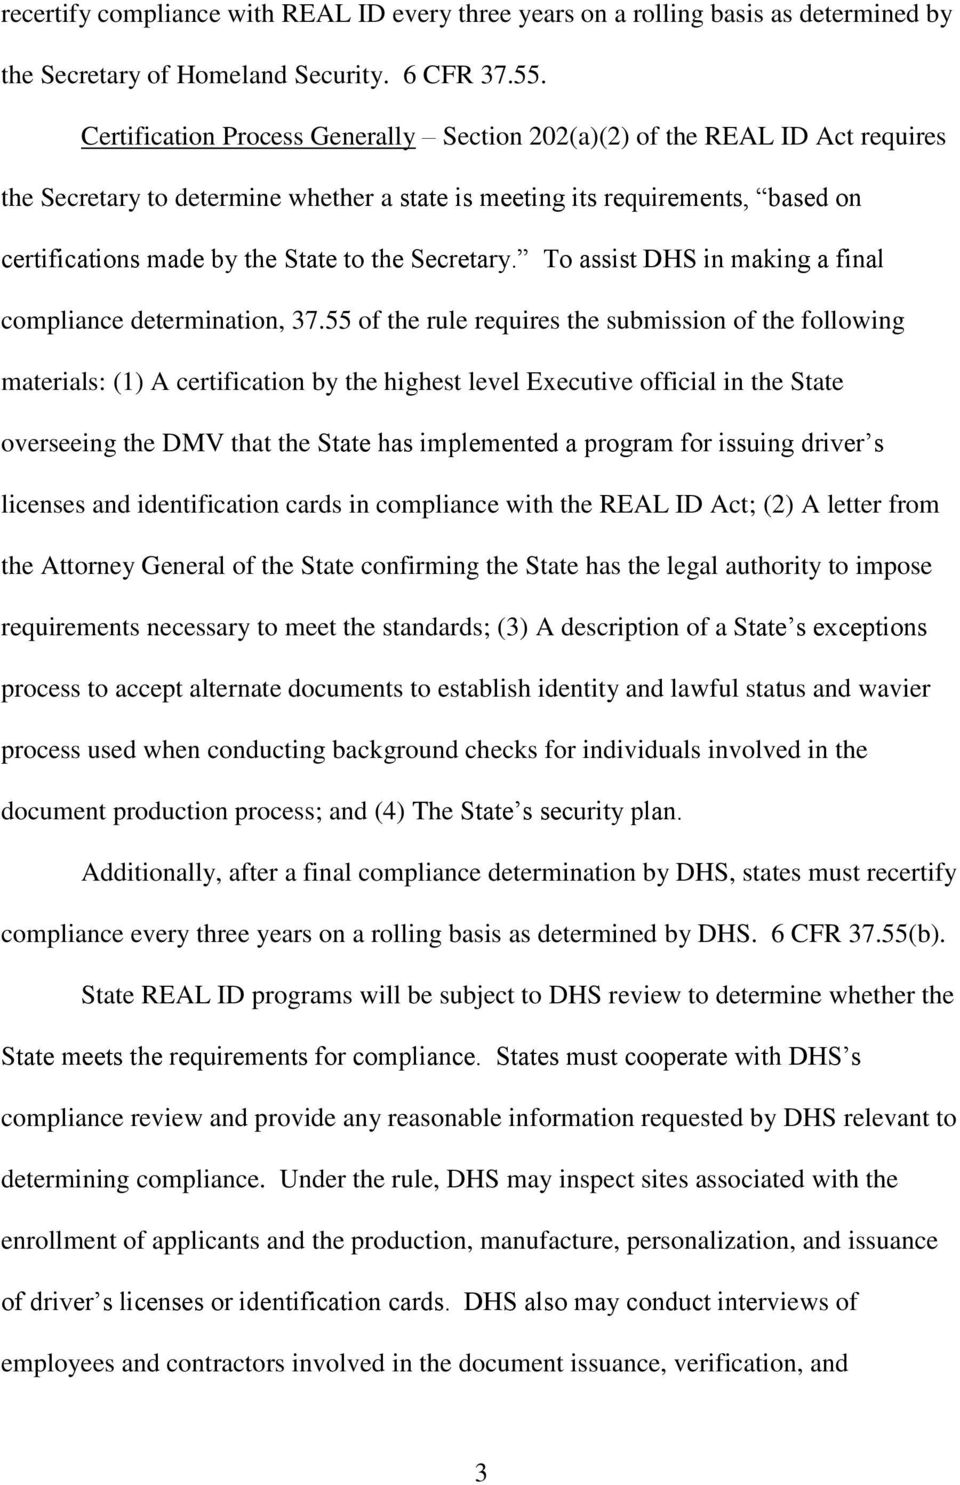 Secretary. To assist DHS in making a final compliance determination, 37.